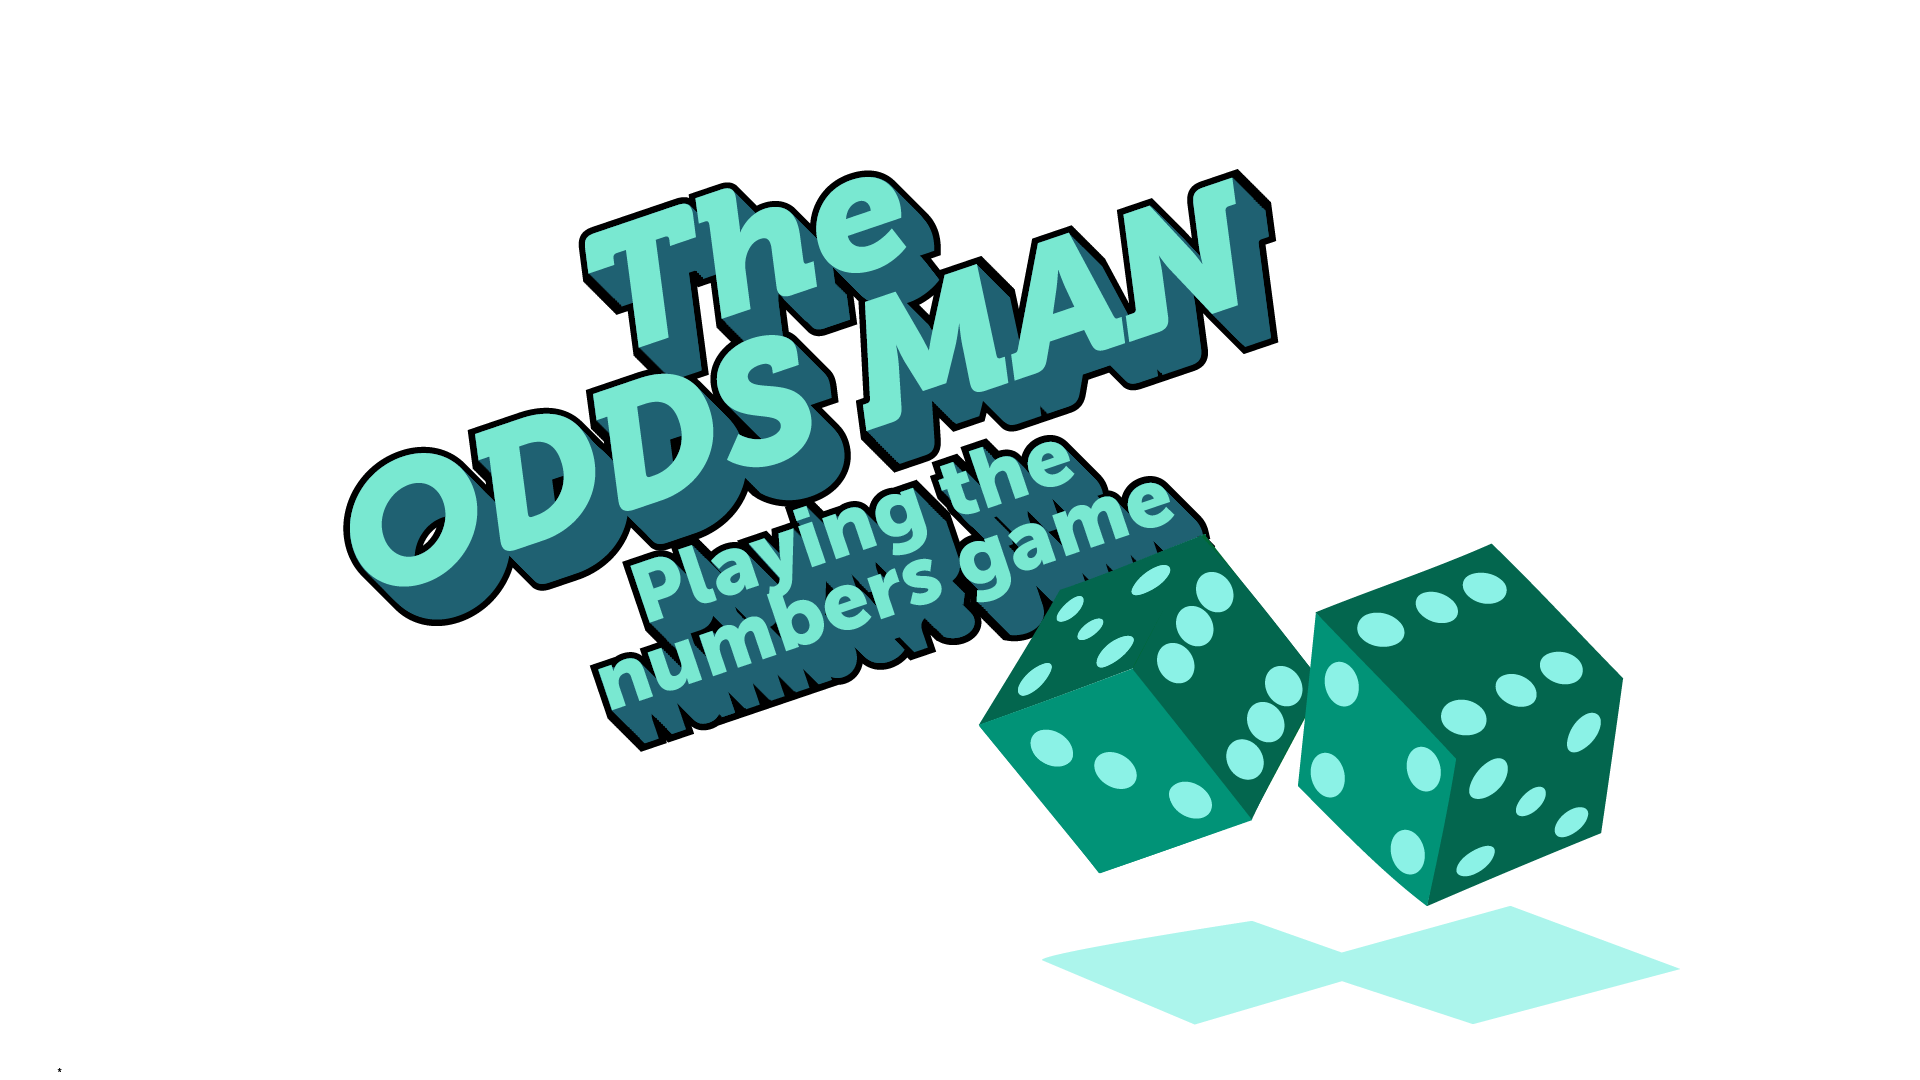 IMAGE: Title 'The Odds Man', subtitle 'Playing the numbers game.'